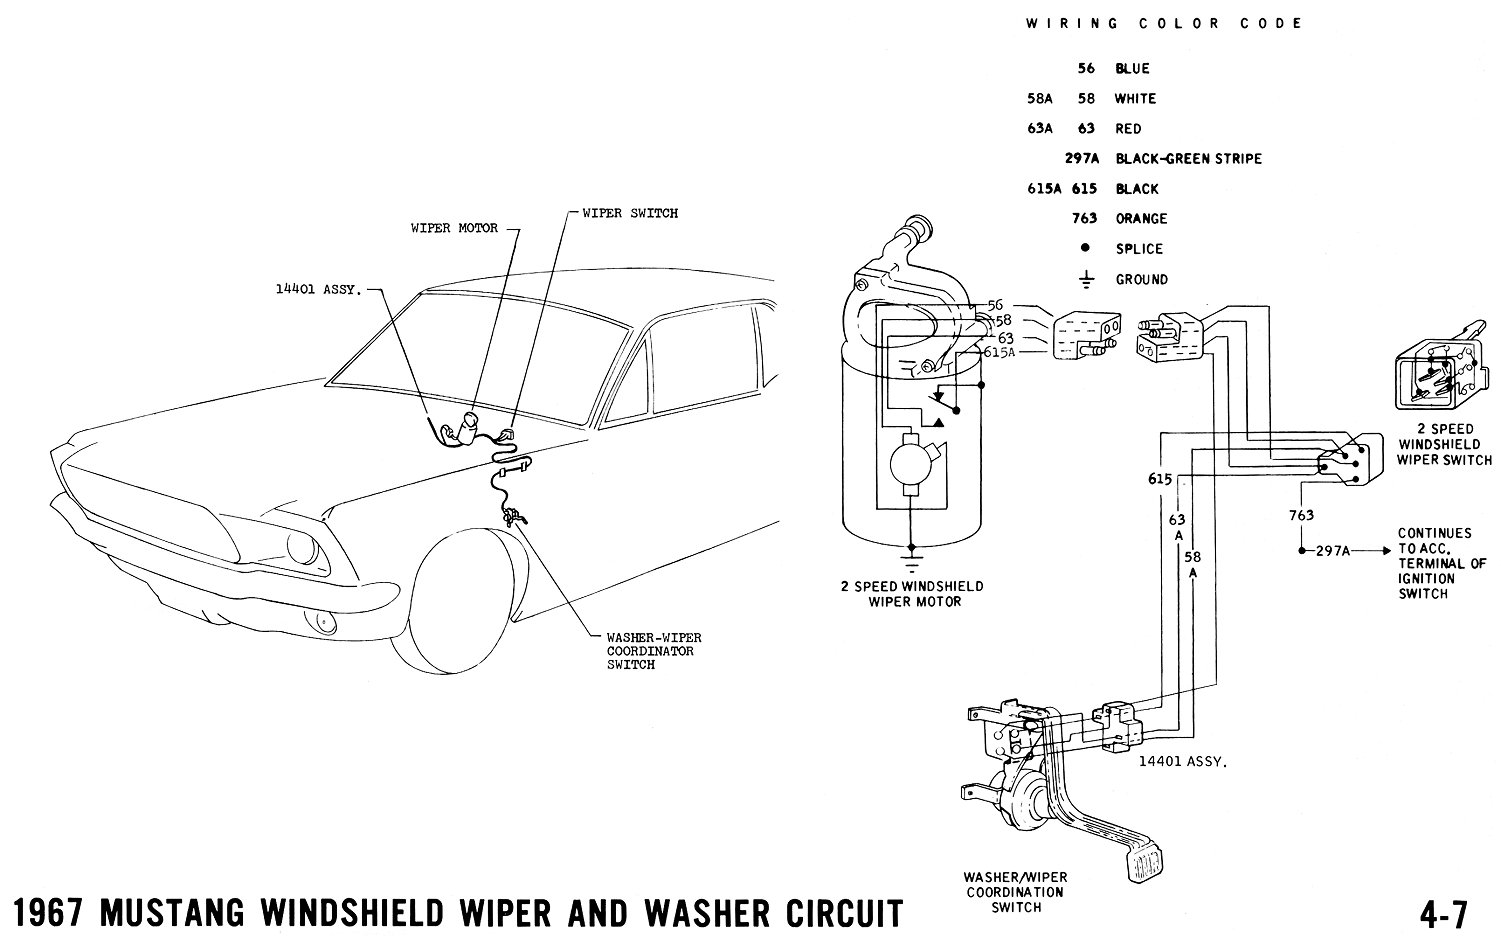 1967 Mustang Wiring And Vacuum Diagrams Average Joe Restoration 1996 Jeep Cherokee Windshield Wipers Pictorial Schematic